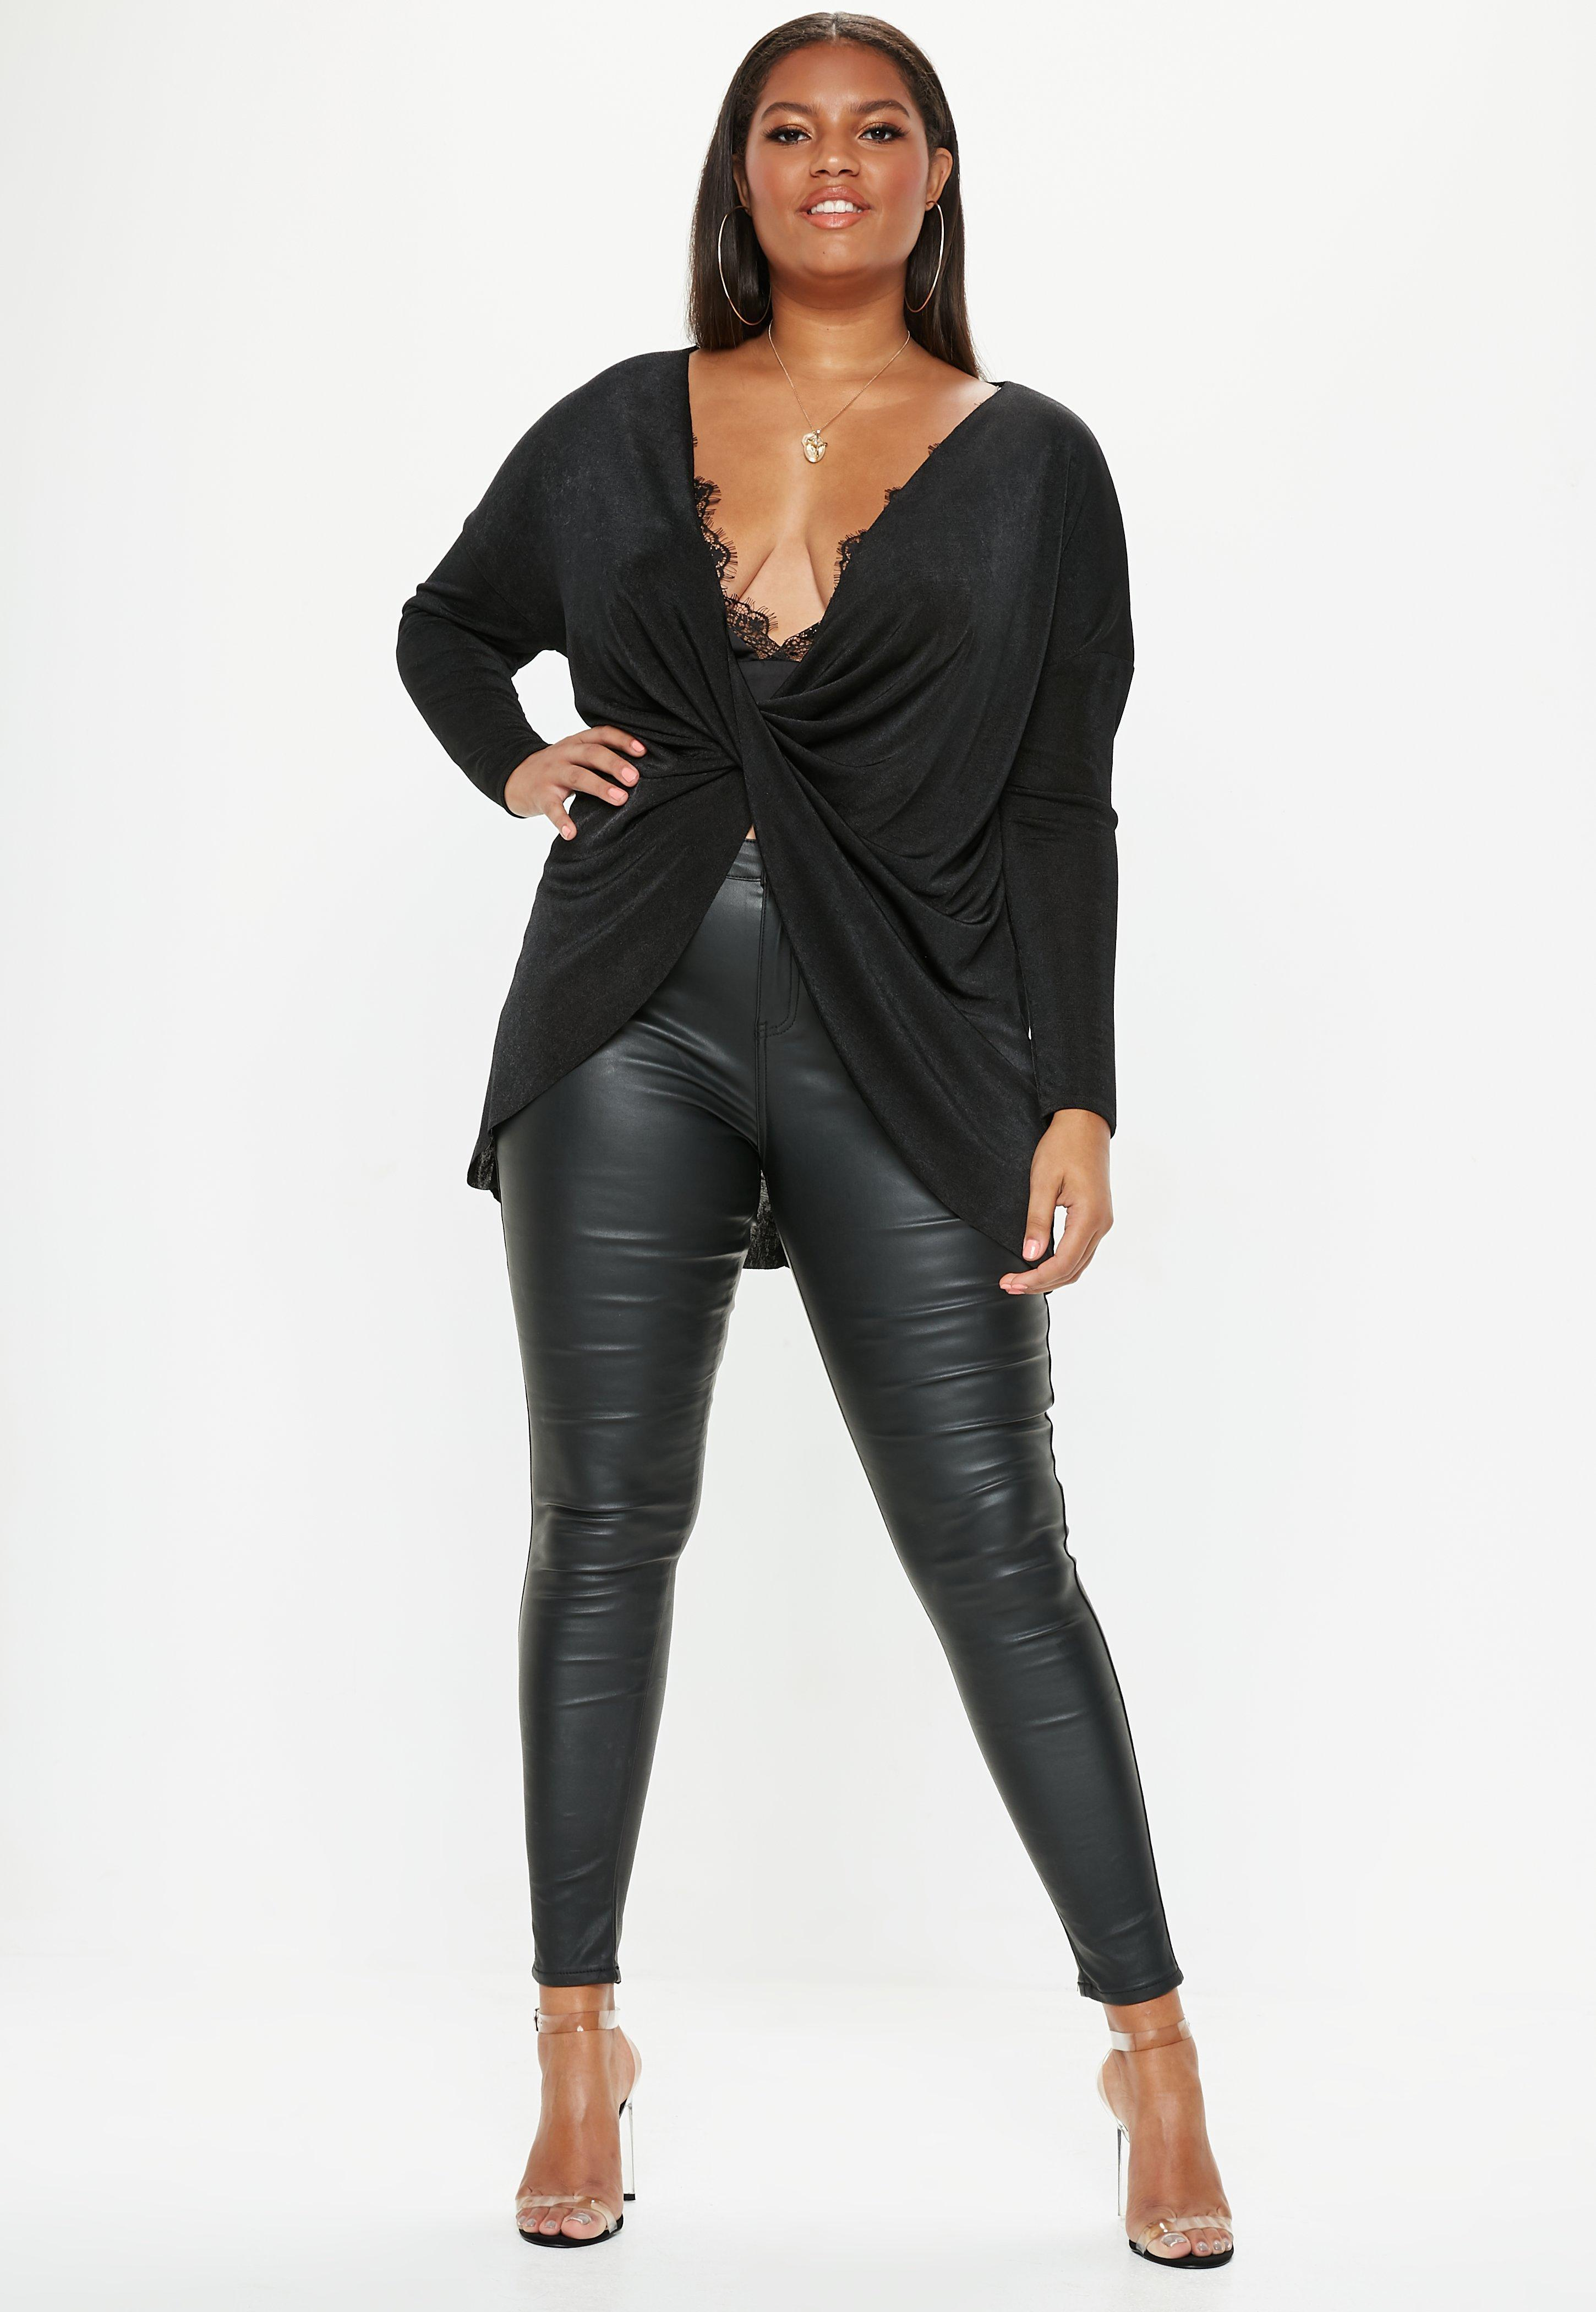 6130a684d05 Missguided - Plus Size Black Drape Front Long Sleeve Slinky Top - Lyst.  View fullscreen